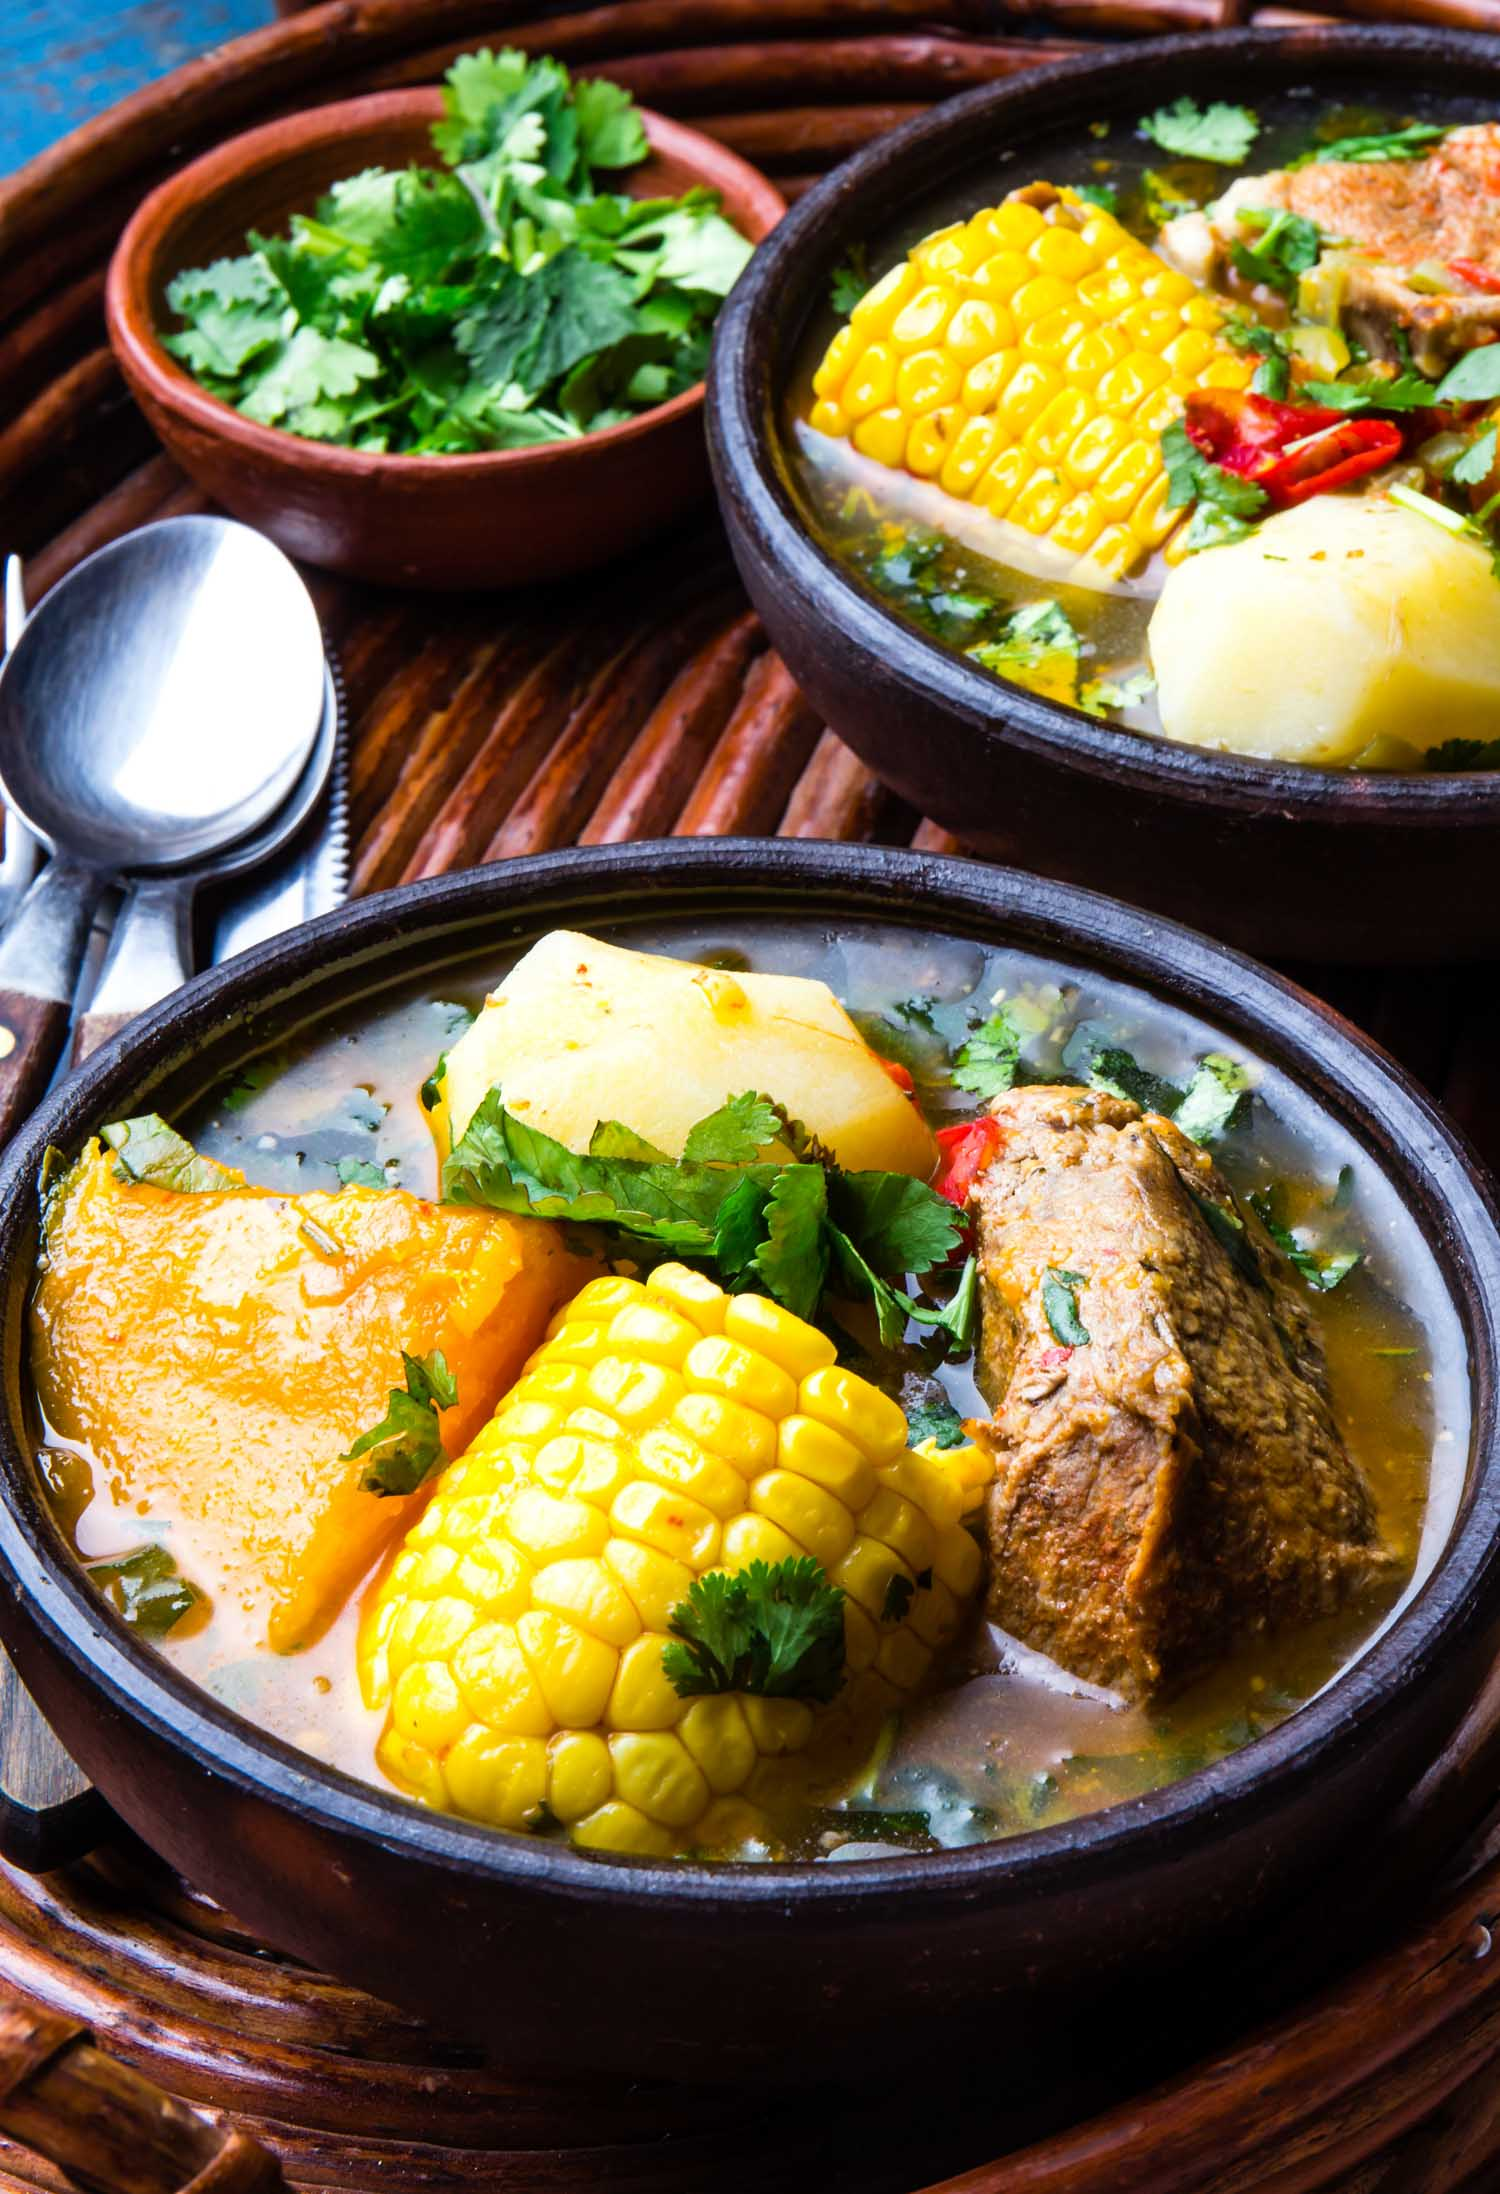 Latin American chilean food. Traditional chilean cazuela de cerdo with chuchoca. Pork soup with potatoes pumpkin. corn served in clay bowl from Pomaire.